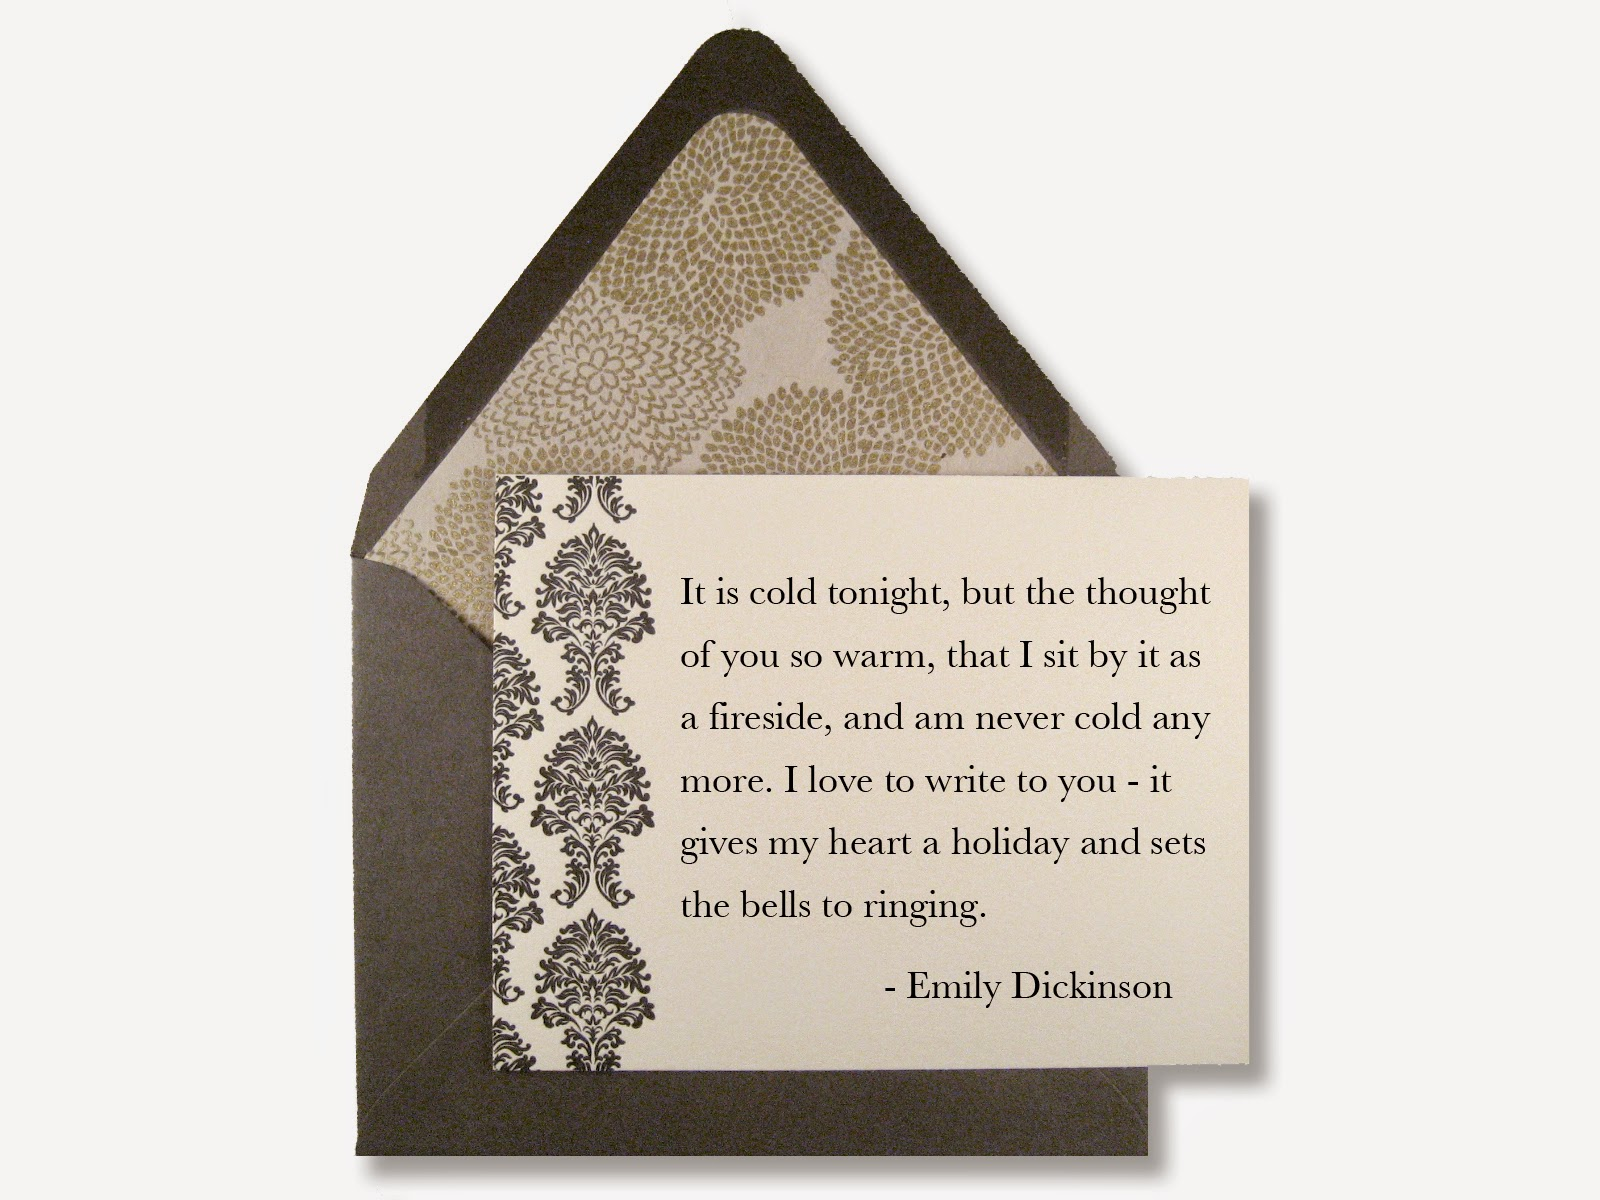 It is cold tonight, but the thought of you so warm, that I sit by it as a fireside, and am never cold any more. I love to write to you - it gives my heart a holiday and sets the bells to ringing. - Emily Dickinson